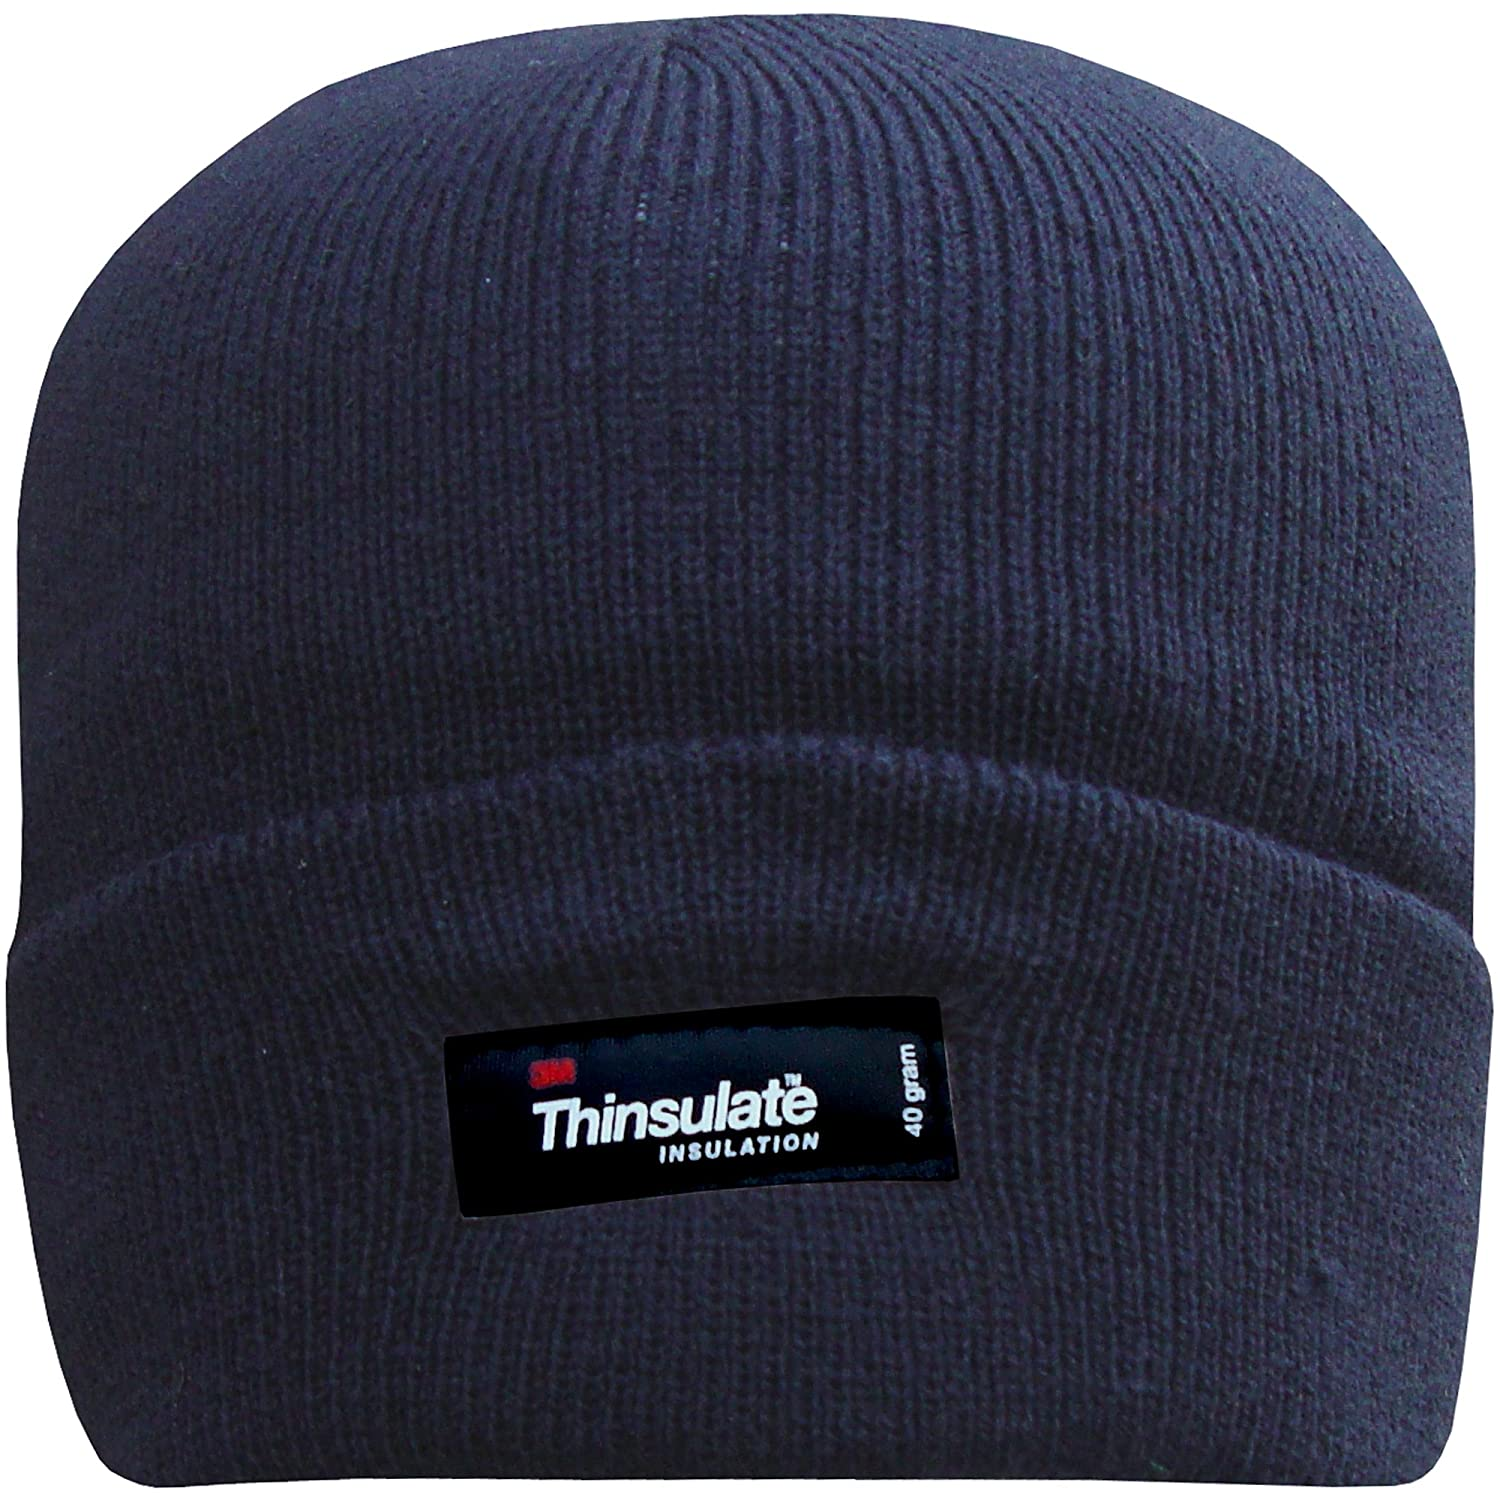 8c9e2e48983 Men s Fleece Lined Thinsulate Turn Over Thermal Hat (Navy Blue)   Amazon.co.uk  Clothing